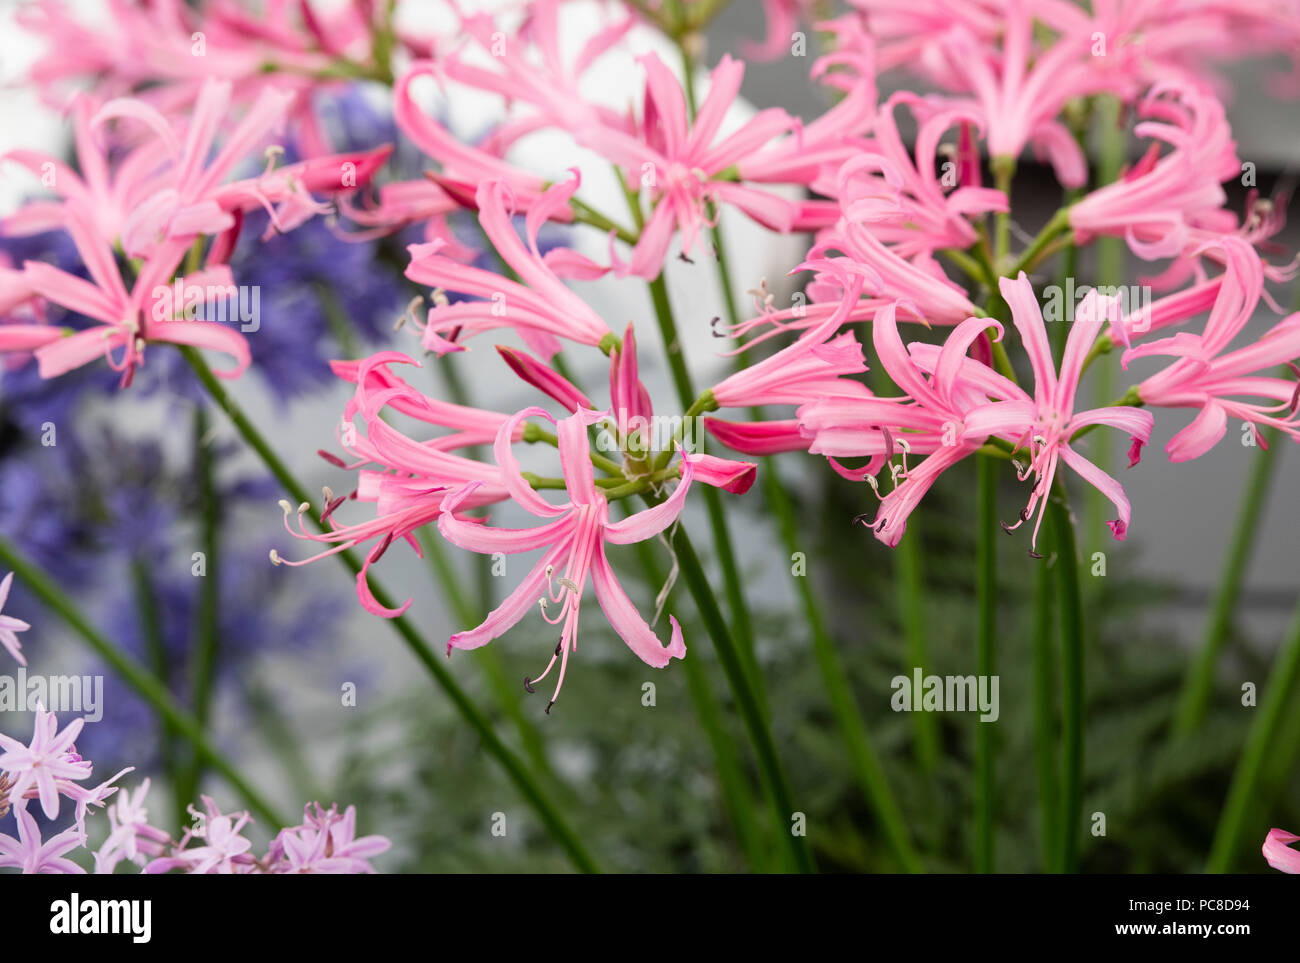 Nerine bowdenii. Bowden lily flowers in a display at RHS Tatton Park flower show 2018. Cheshire, UK - Stock Image